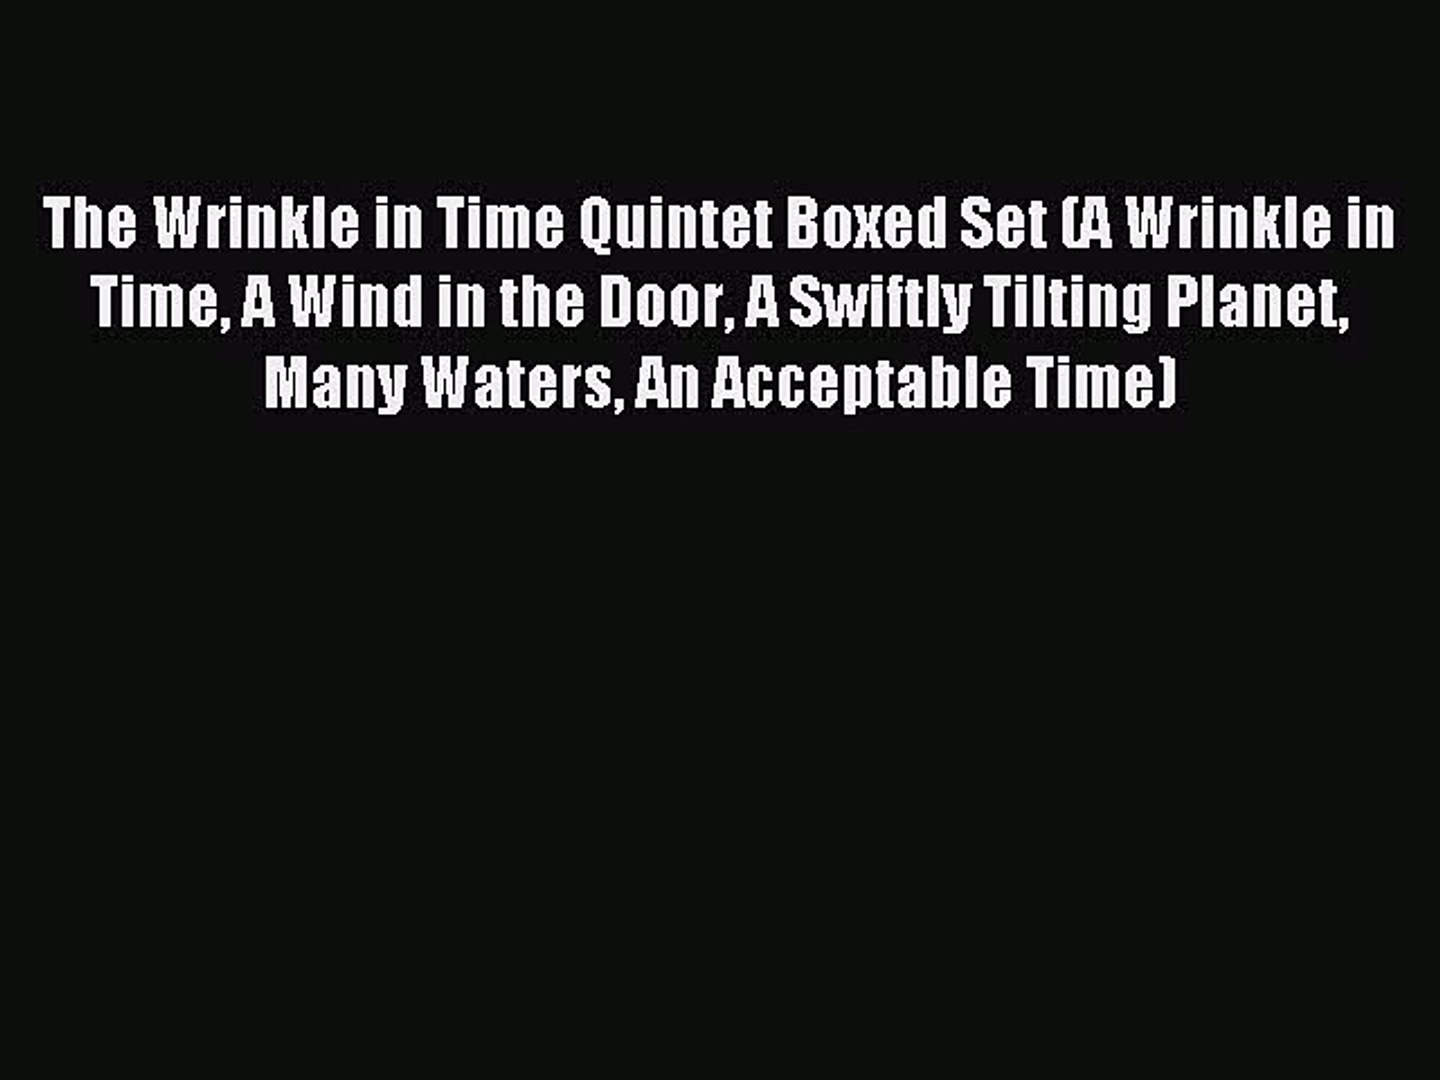 Read The Wrinkle in Time Quintet Boxed Set (A Wrinkle in Time A Wind in the Door A Swiftly